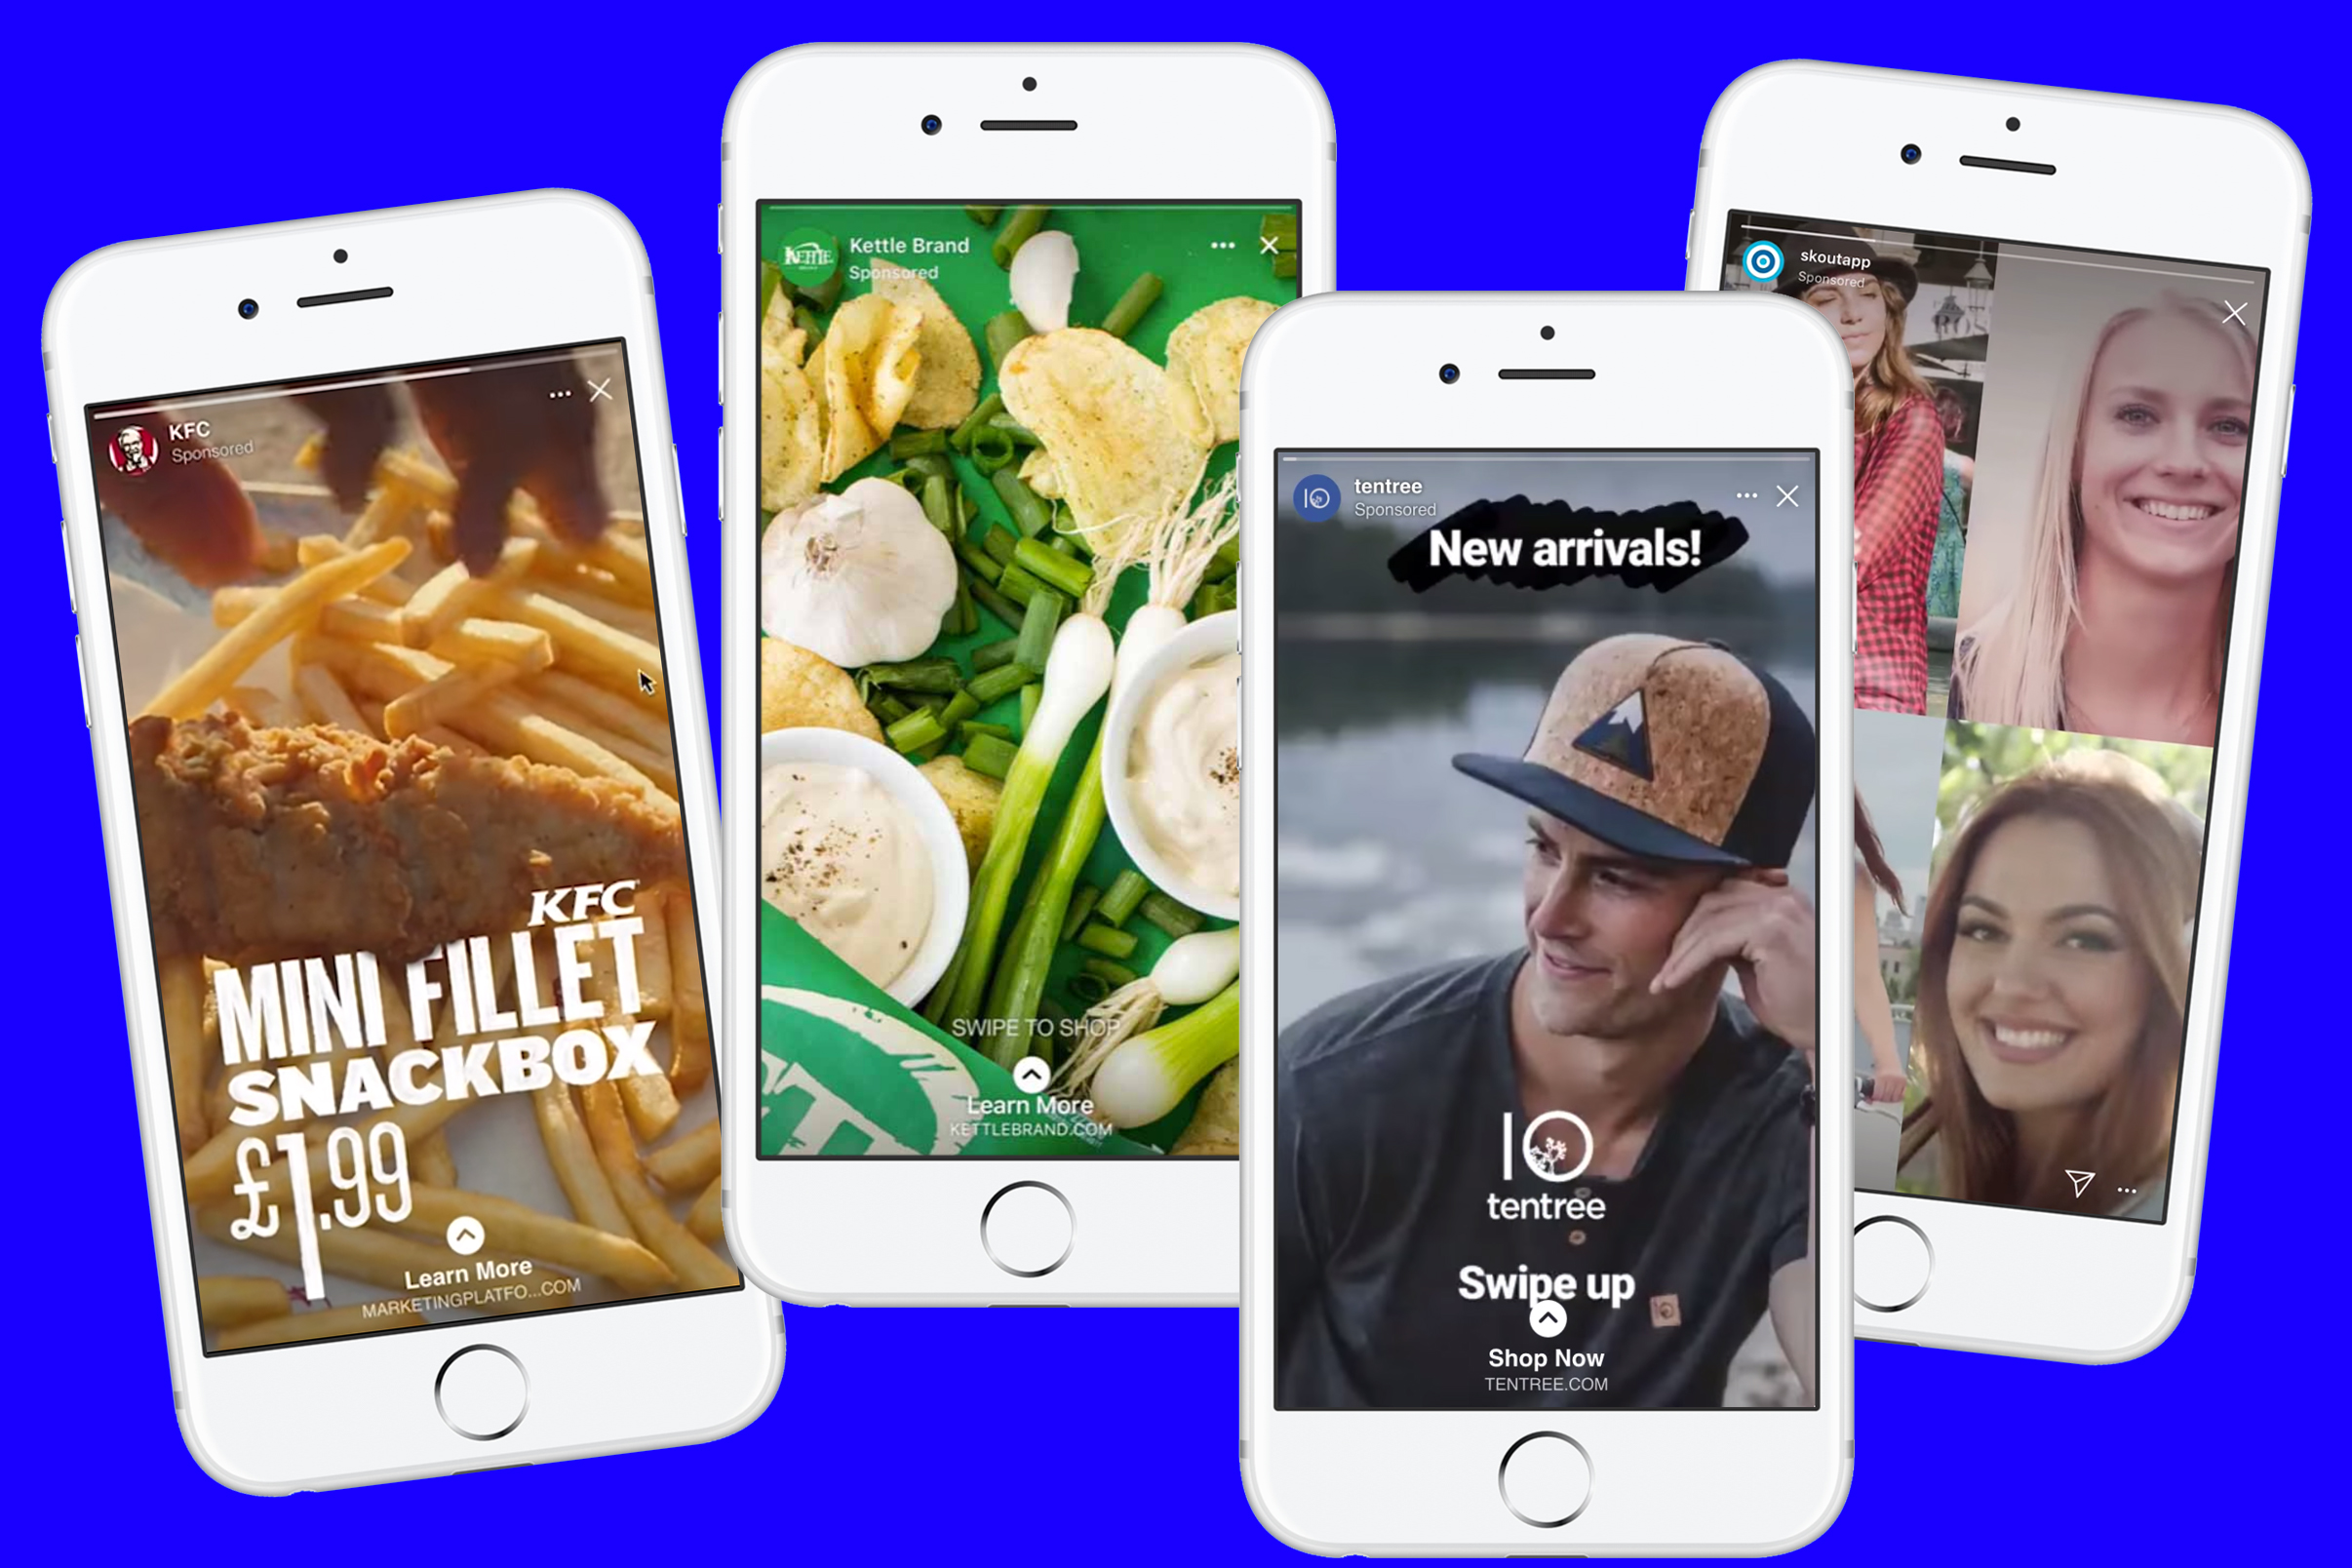 More than half of Facebook's 7 million advertisers are now using Story ads